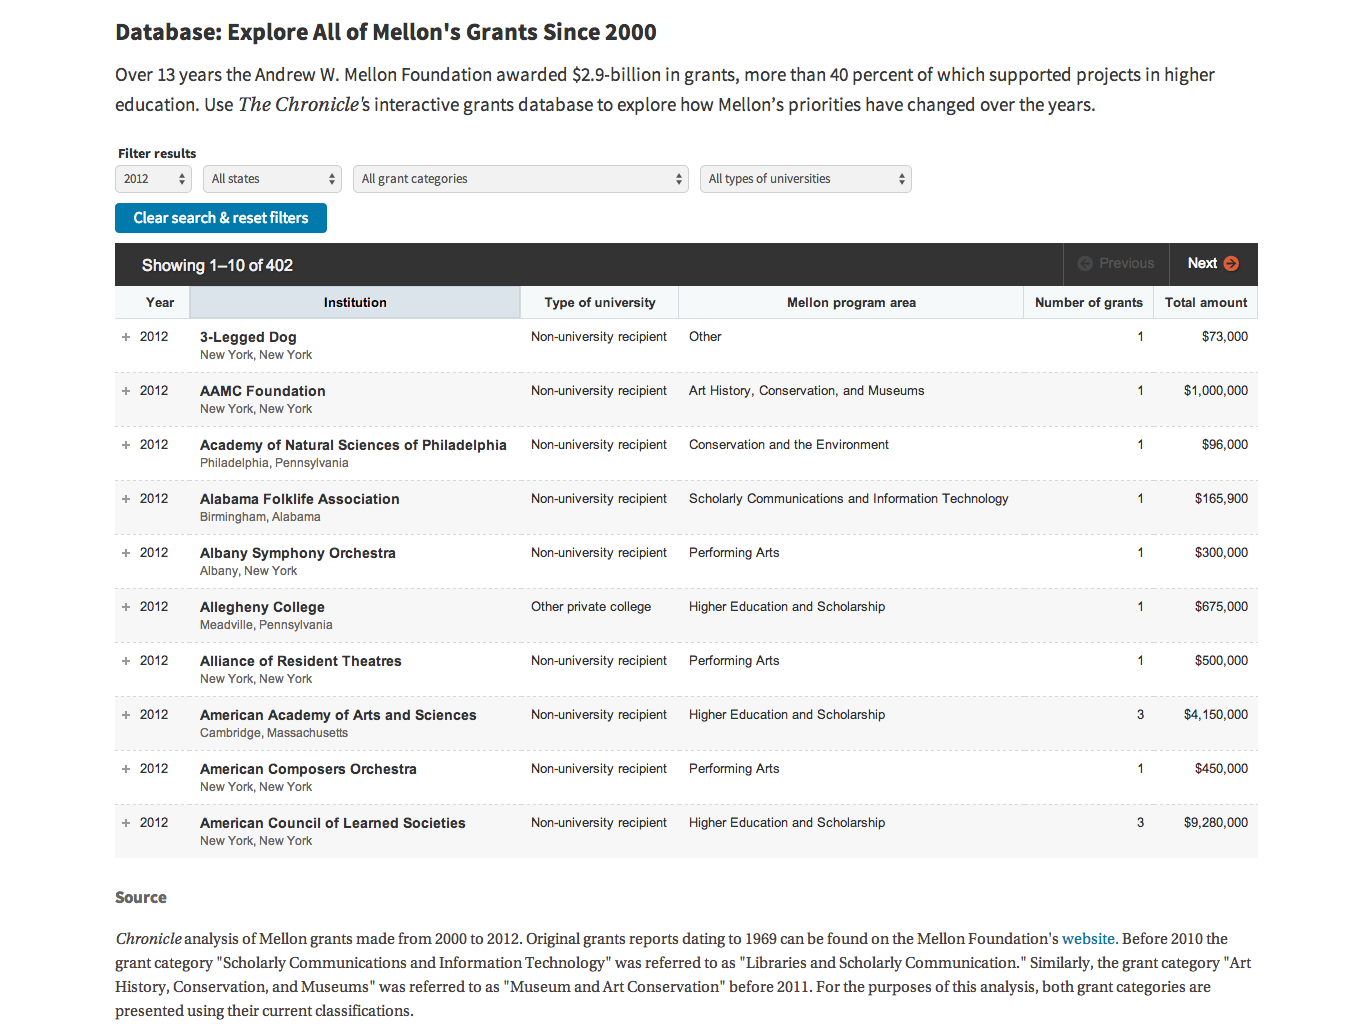 2014 Mellon Foundation Grants Database